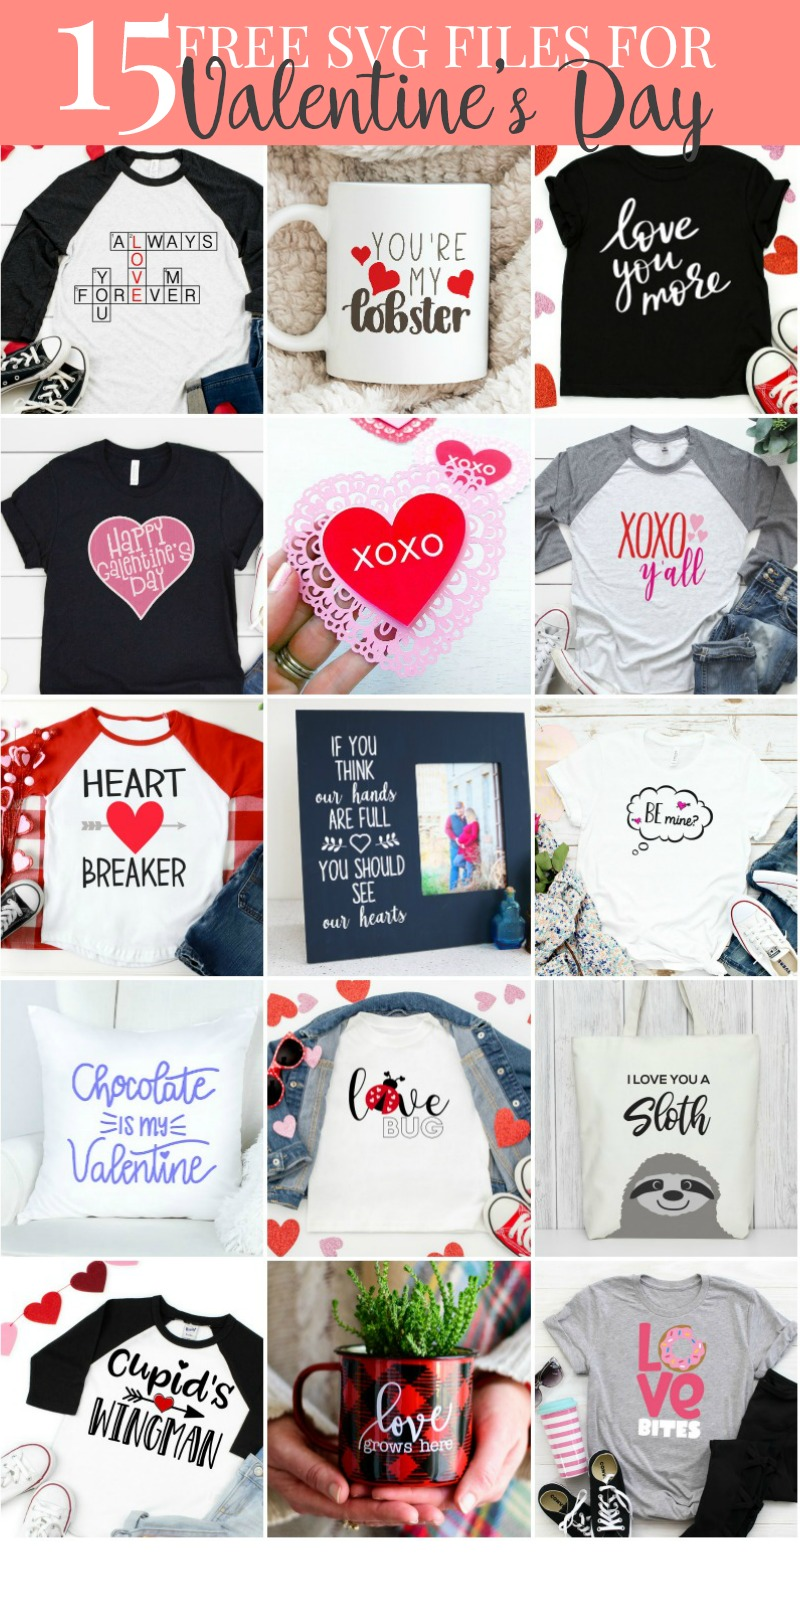 Get 15+ Valentine's Day SVG files for free!